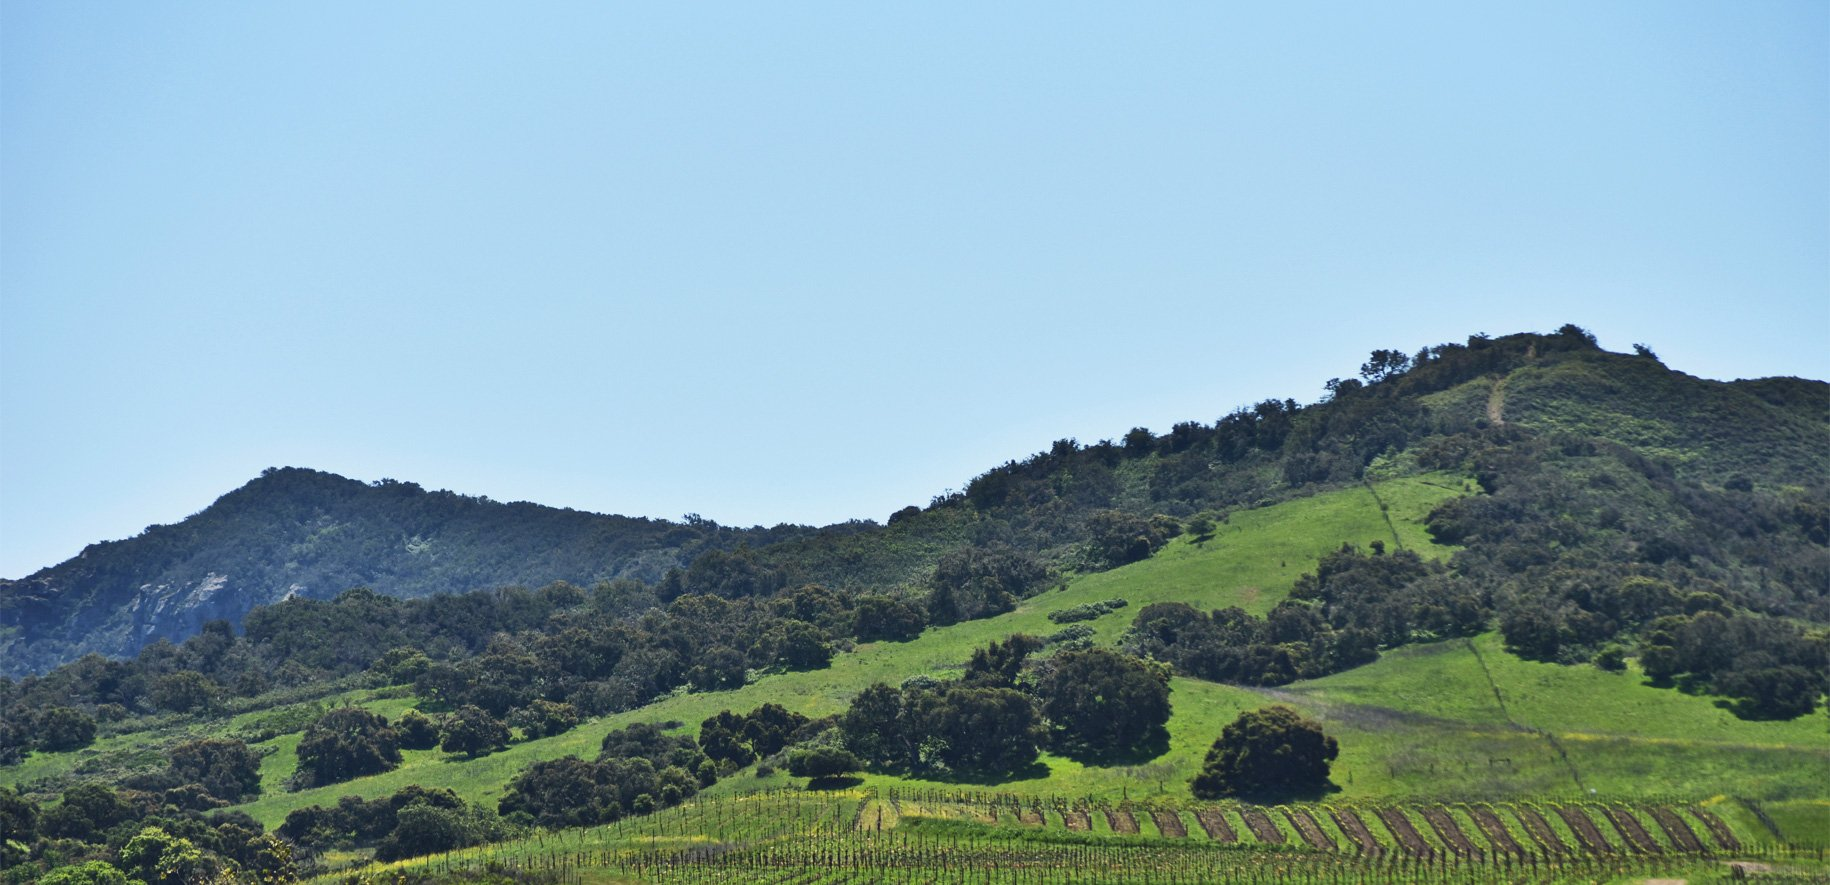 Vineyard and hill